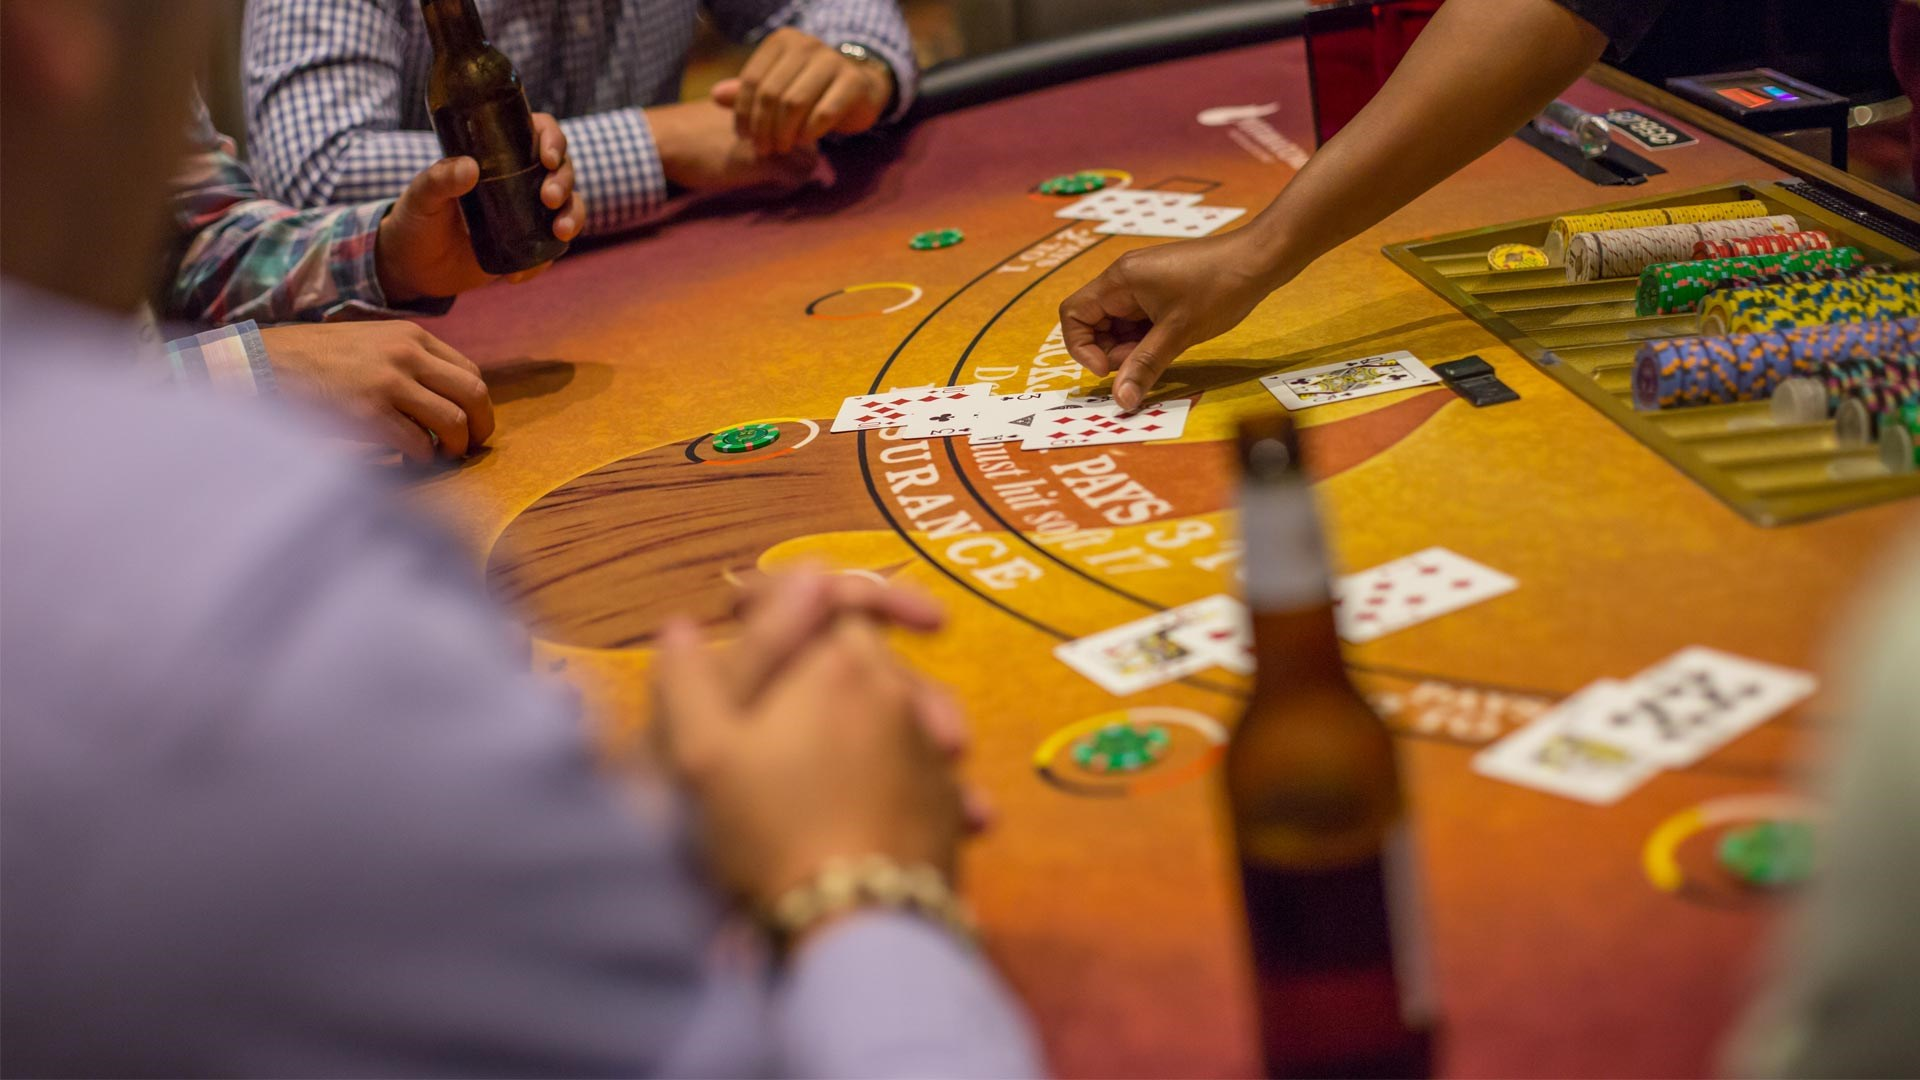 The Best Airports For Gambling